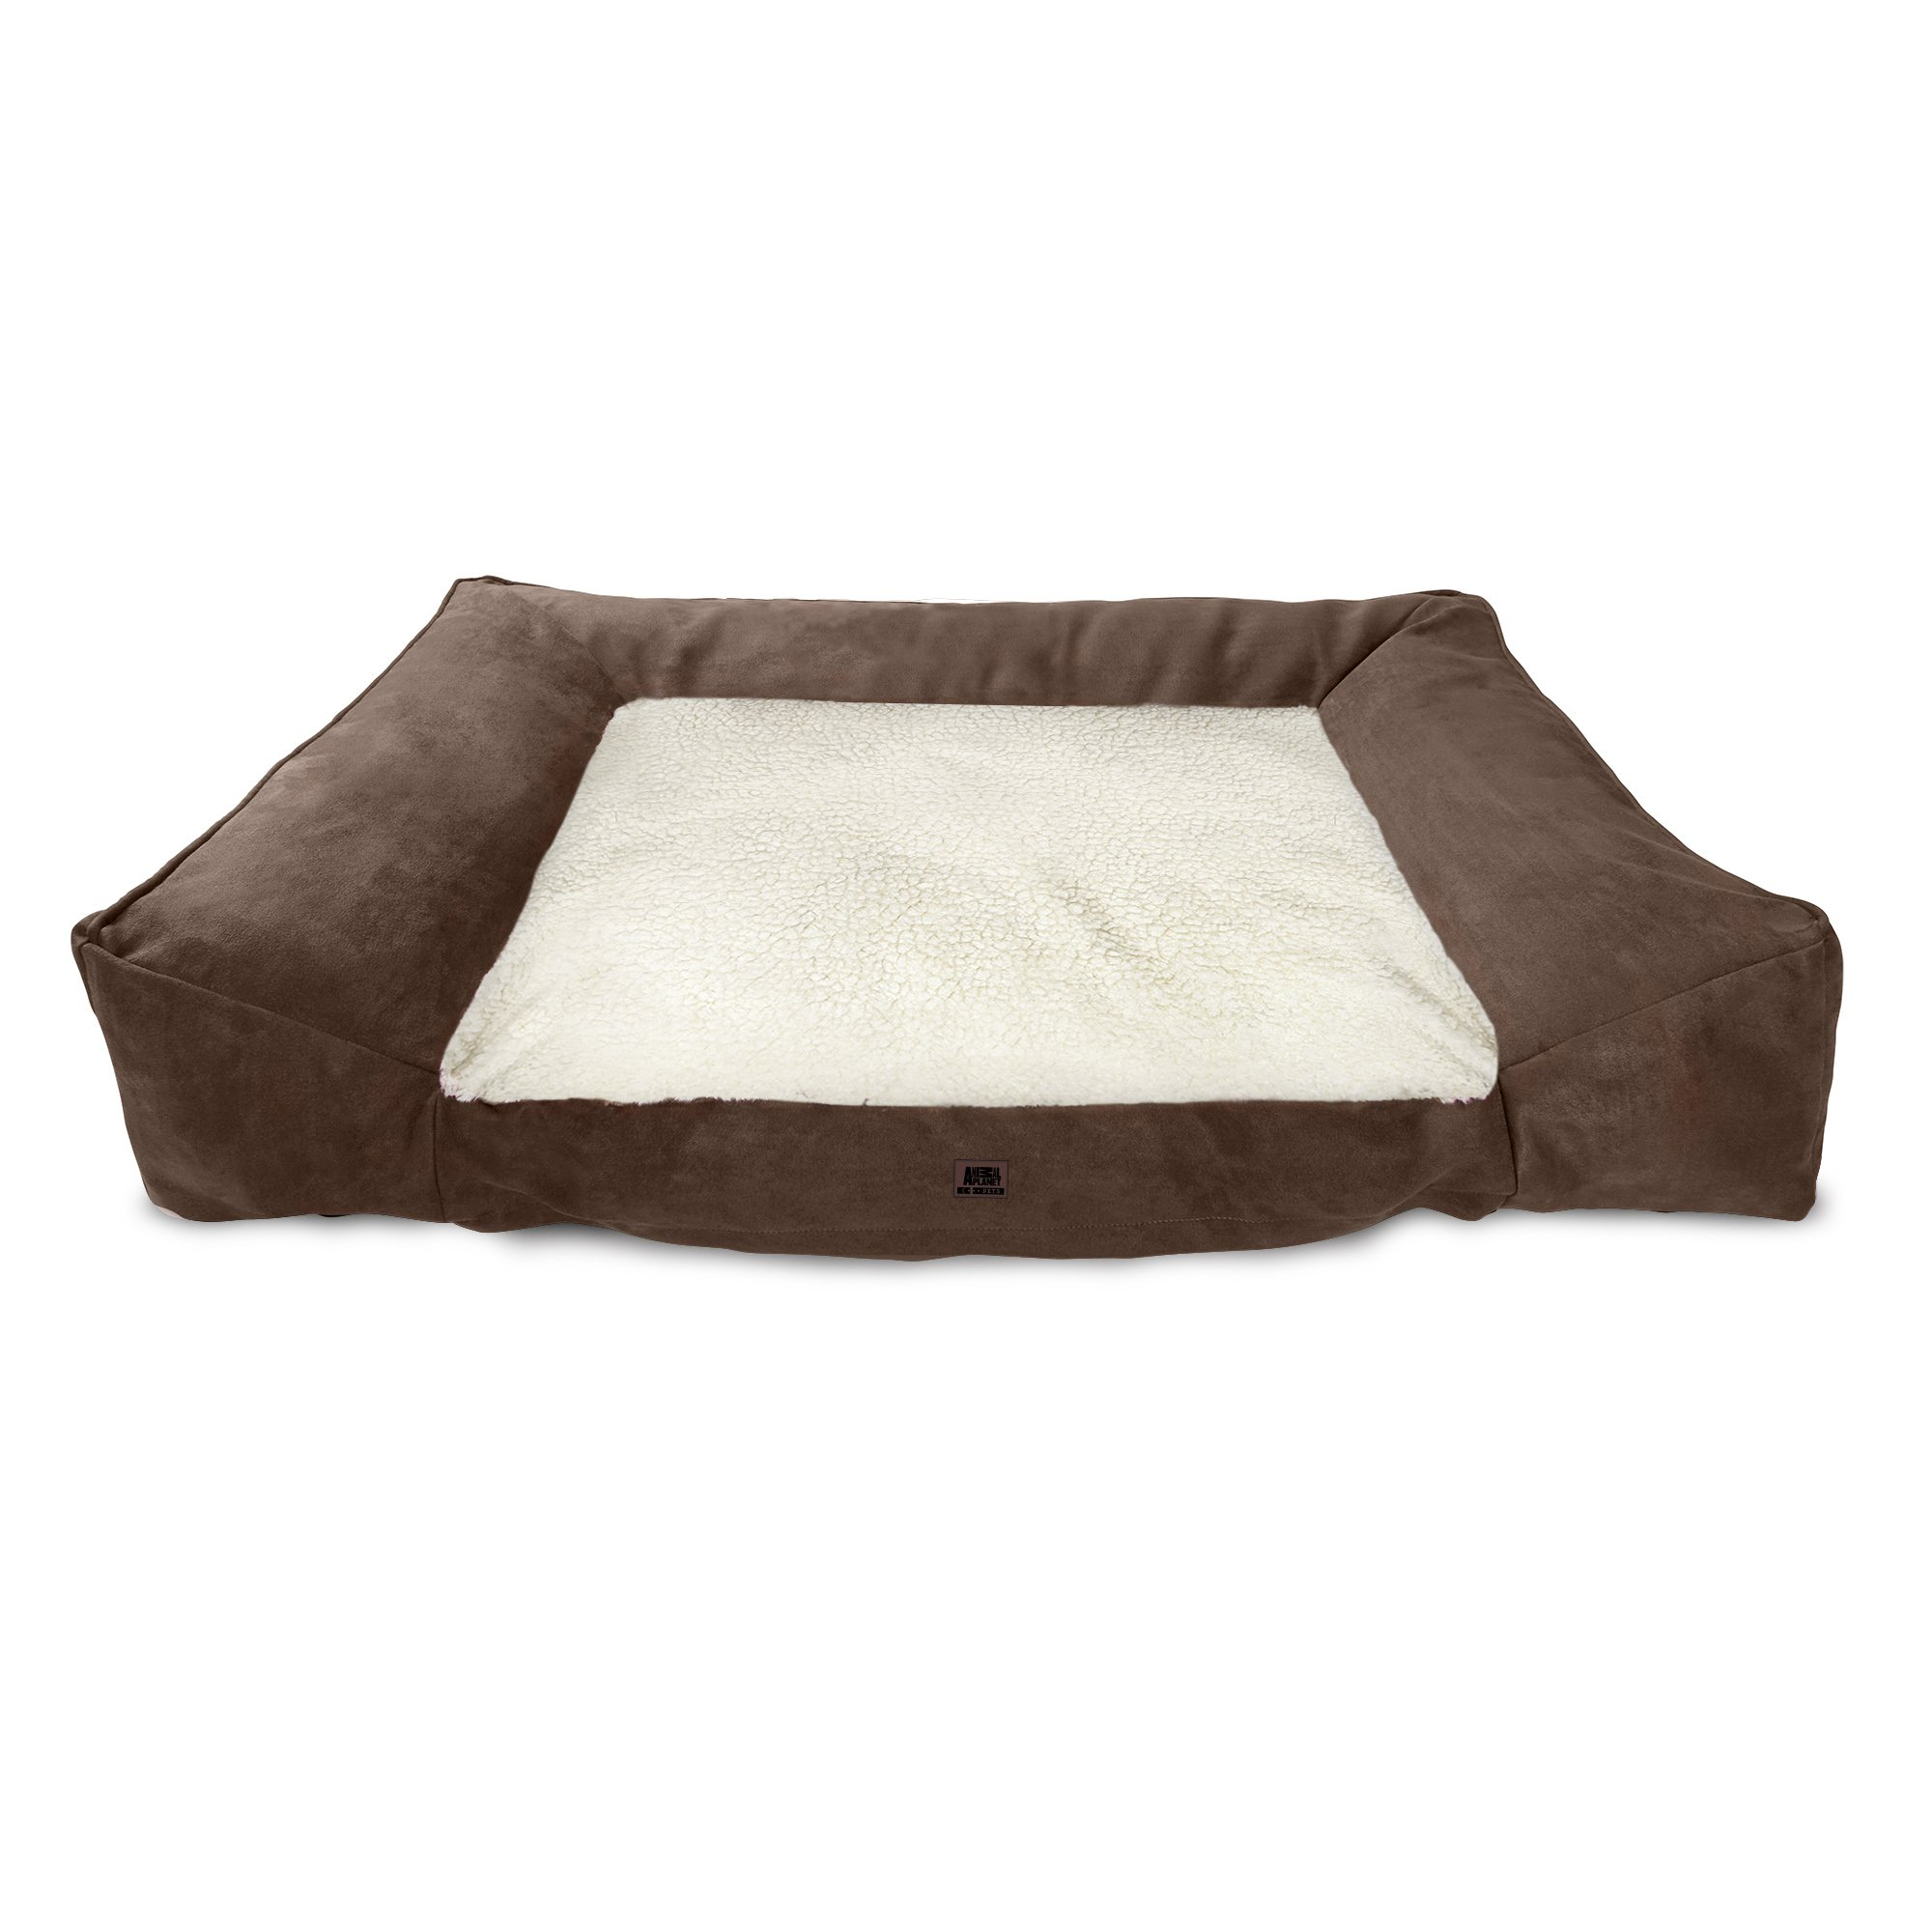 Animal Planet Pet Bed (Large, Brown w/Cream Top)